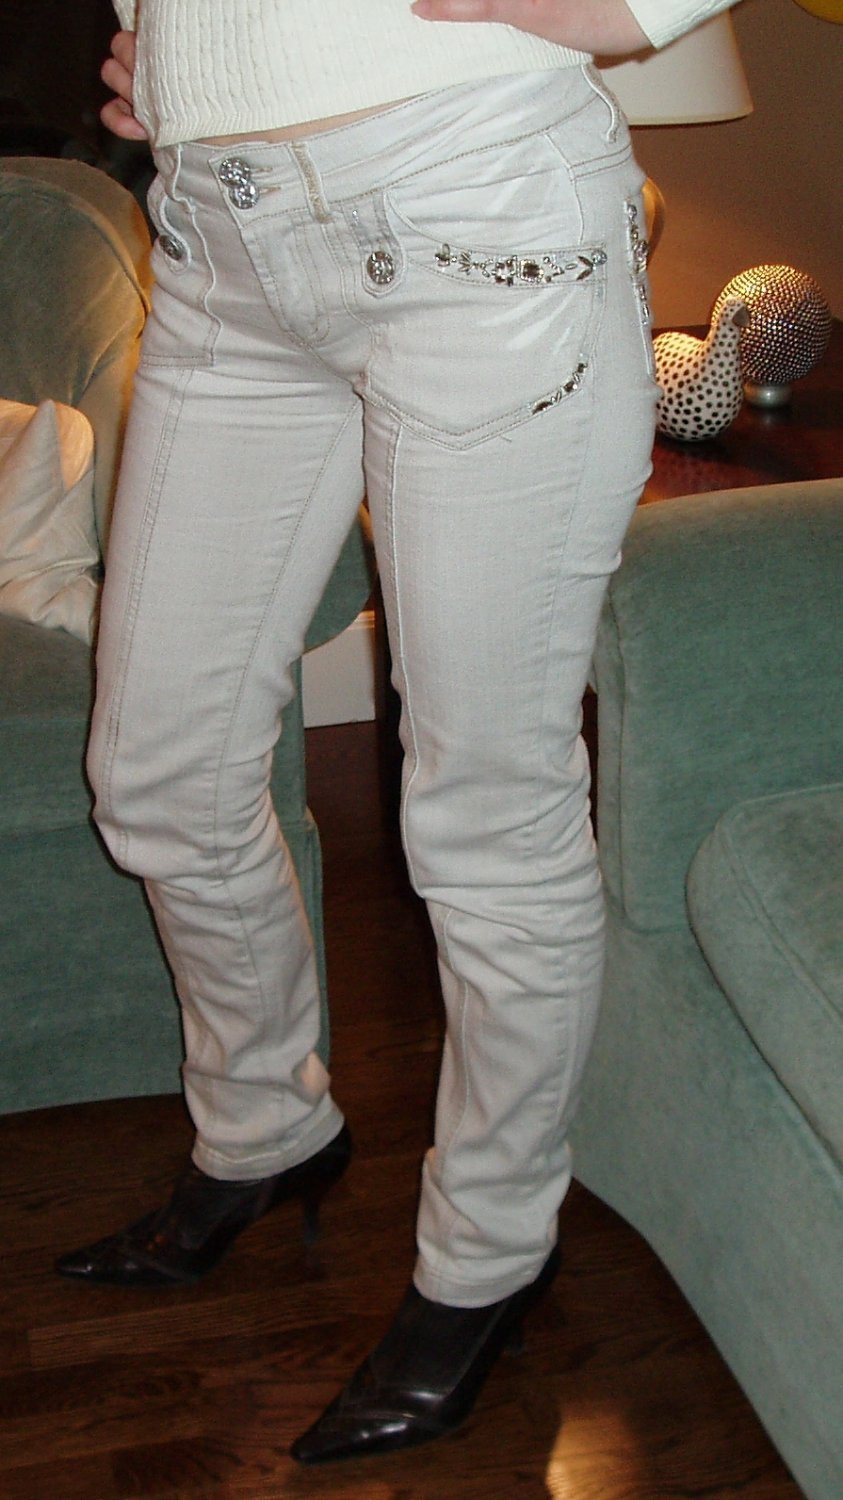 Women's off-white Rosa & Rose jeans w/rhinest, size M